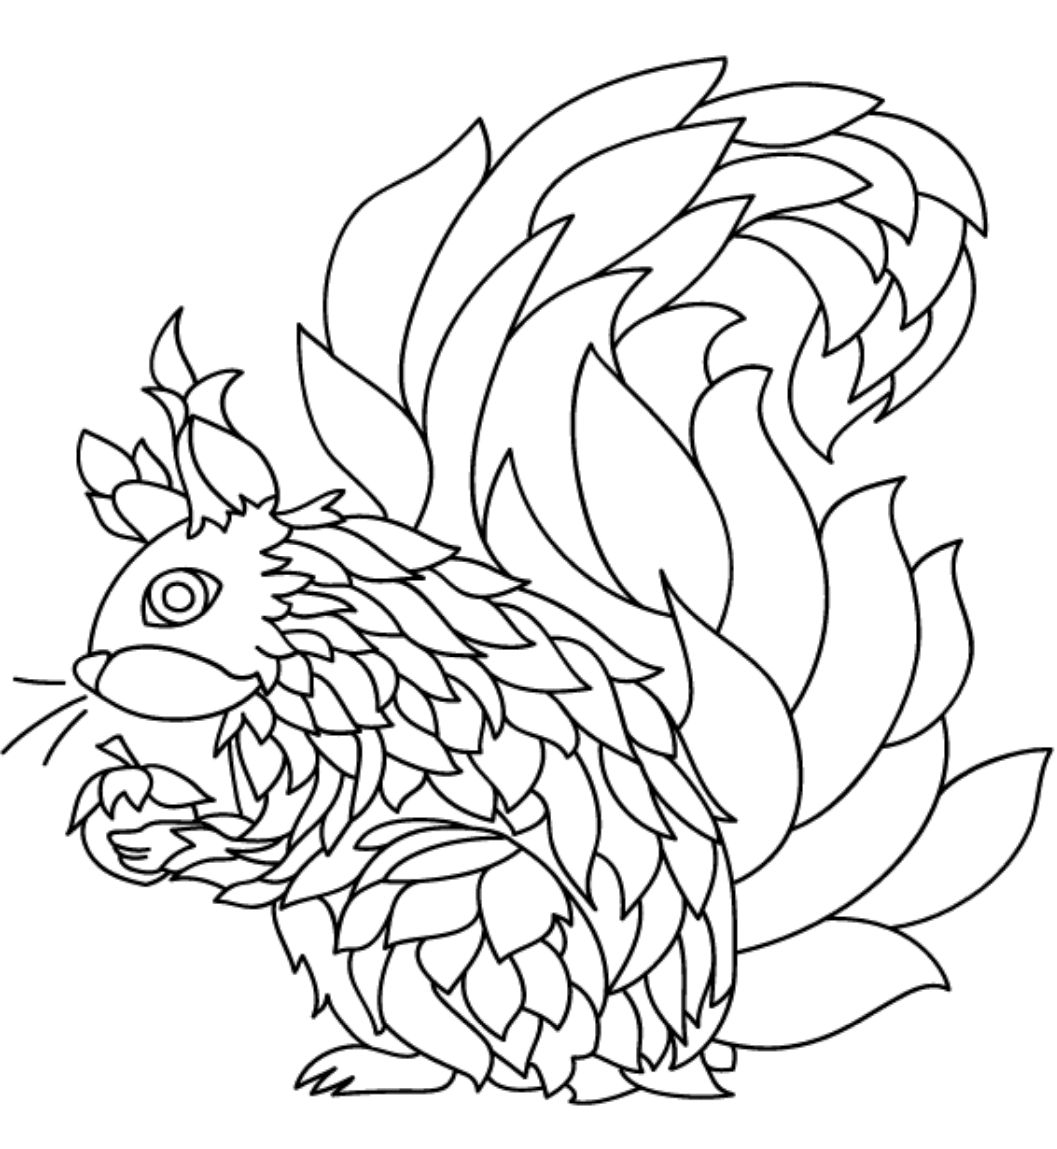 squirrel colouring free printable squirrel coloring pages for kids animal place squirrel colouring